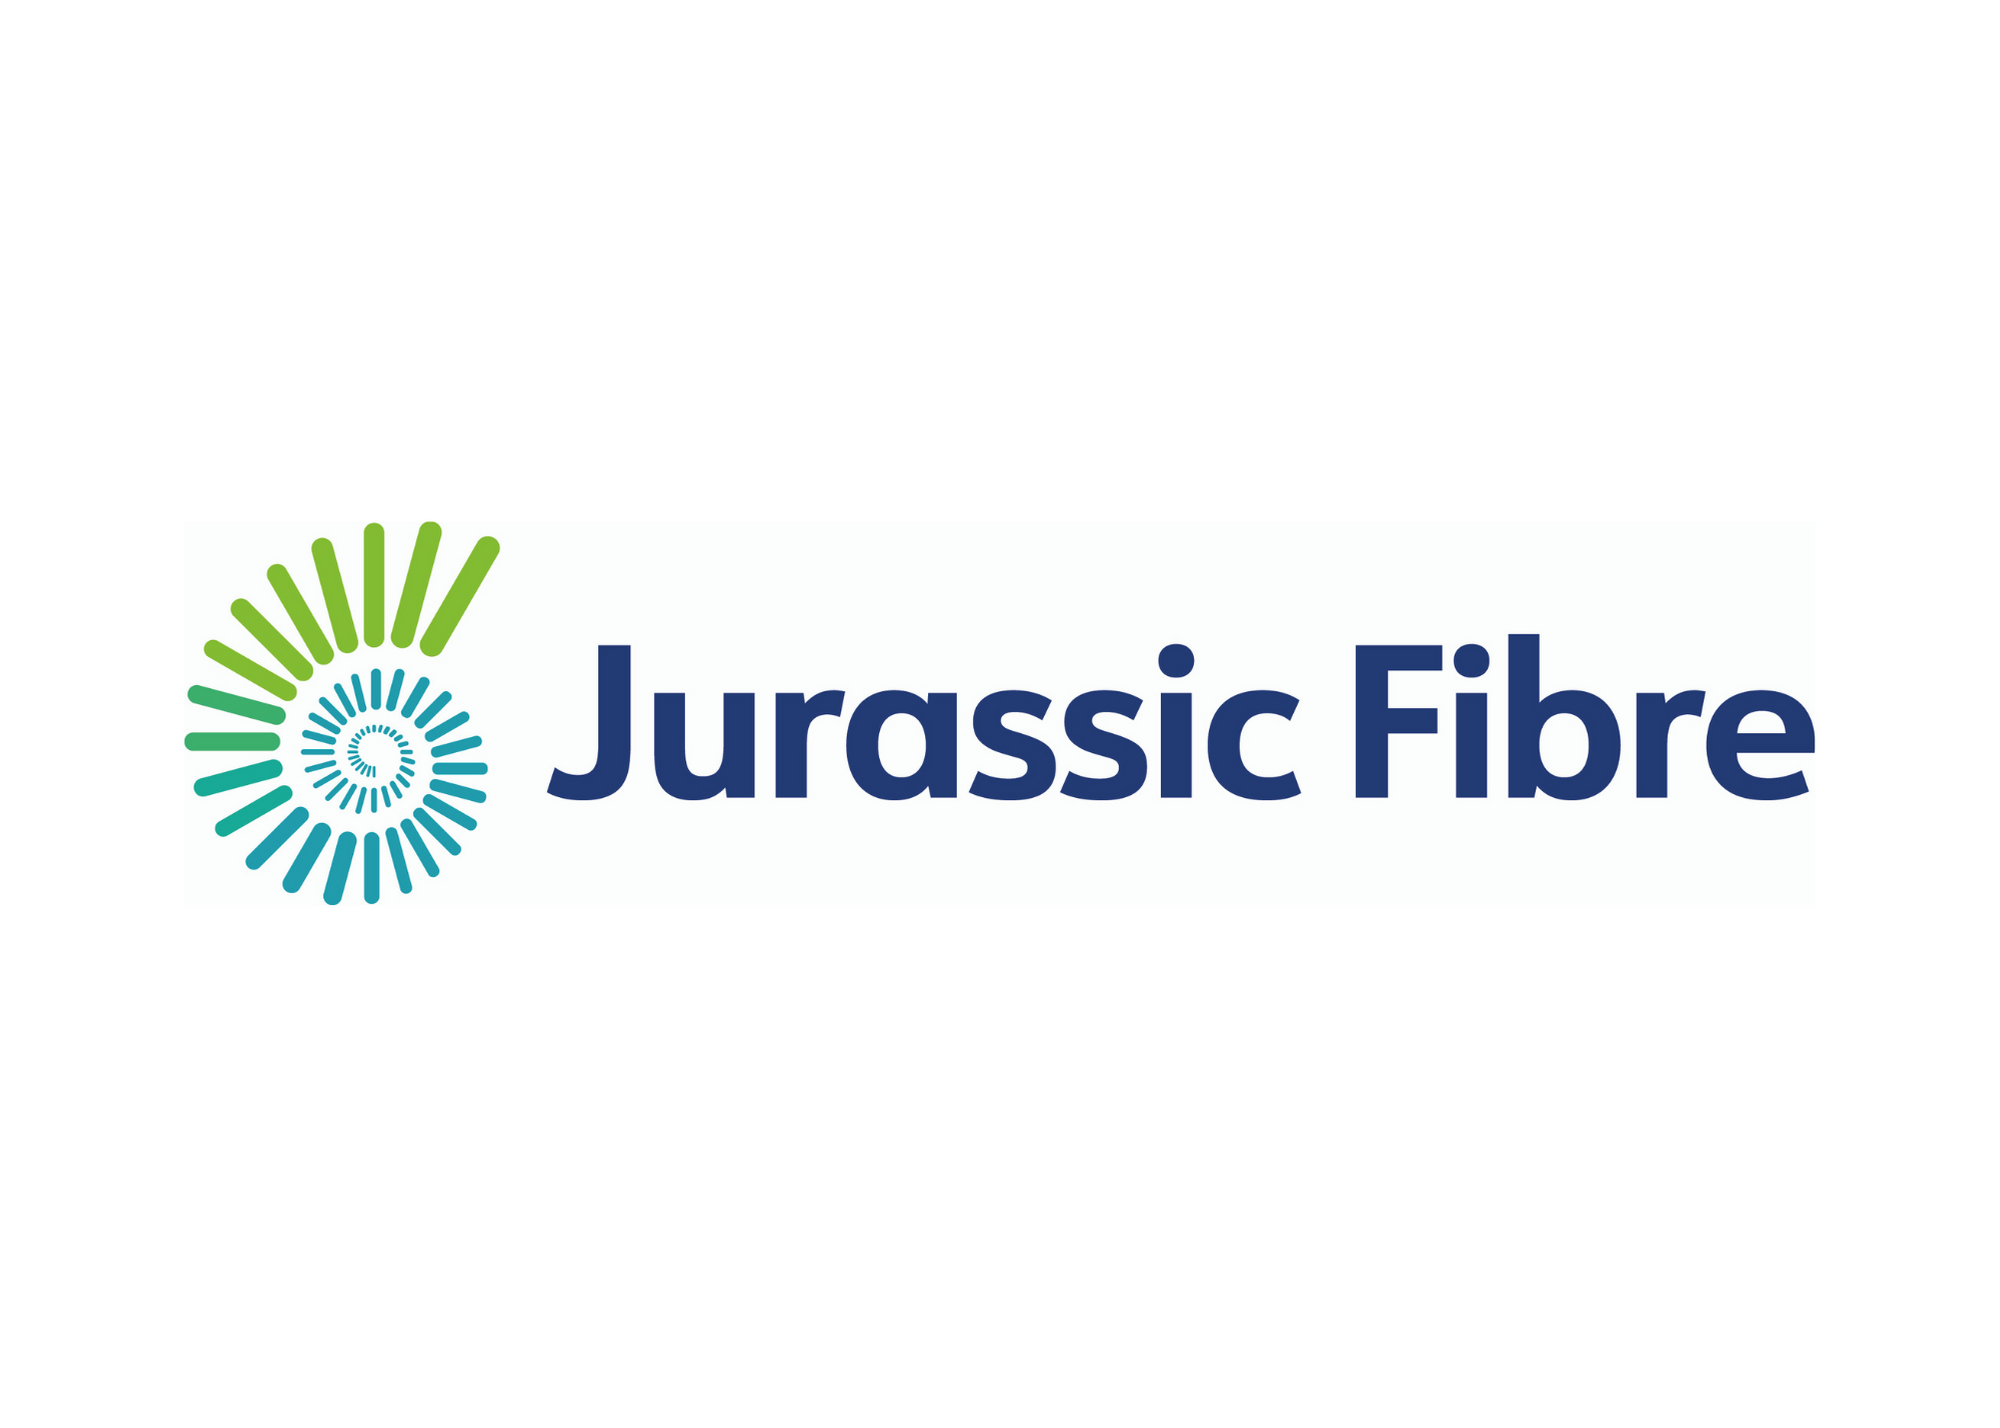 Jurassic Fibre has become a gold sponsor of The Beehive